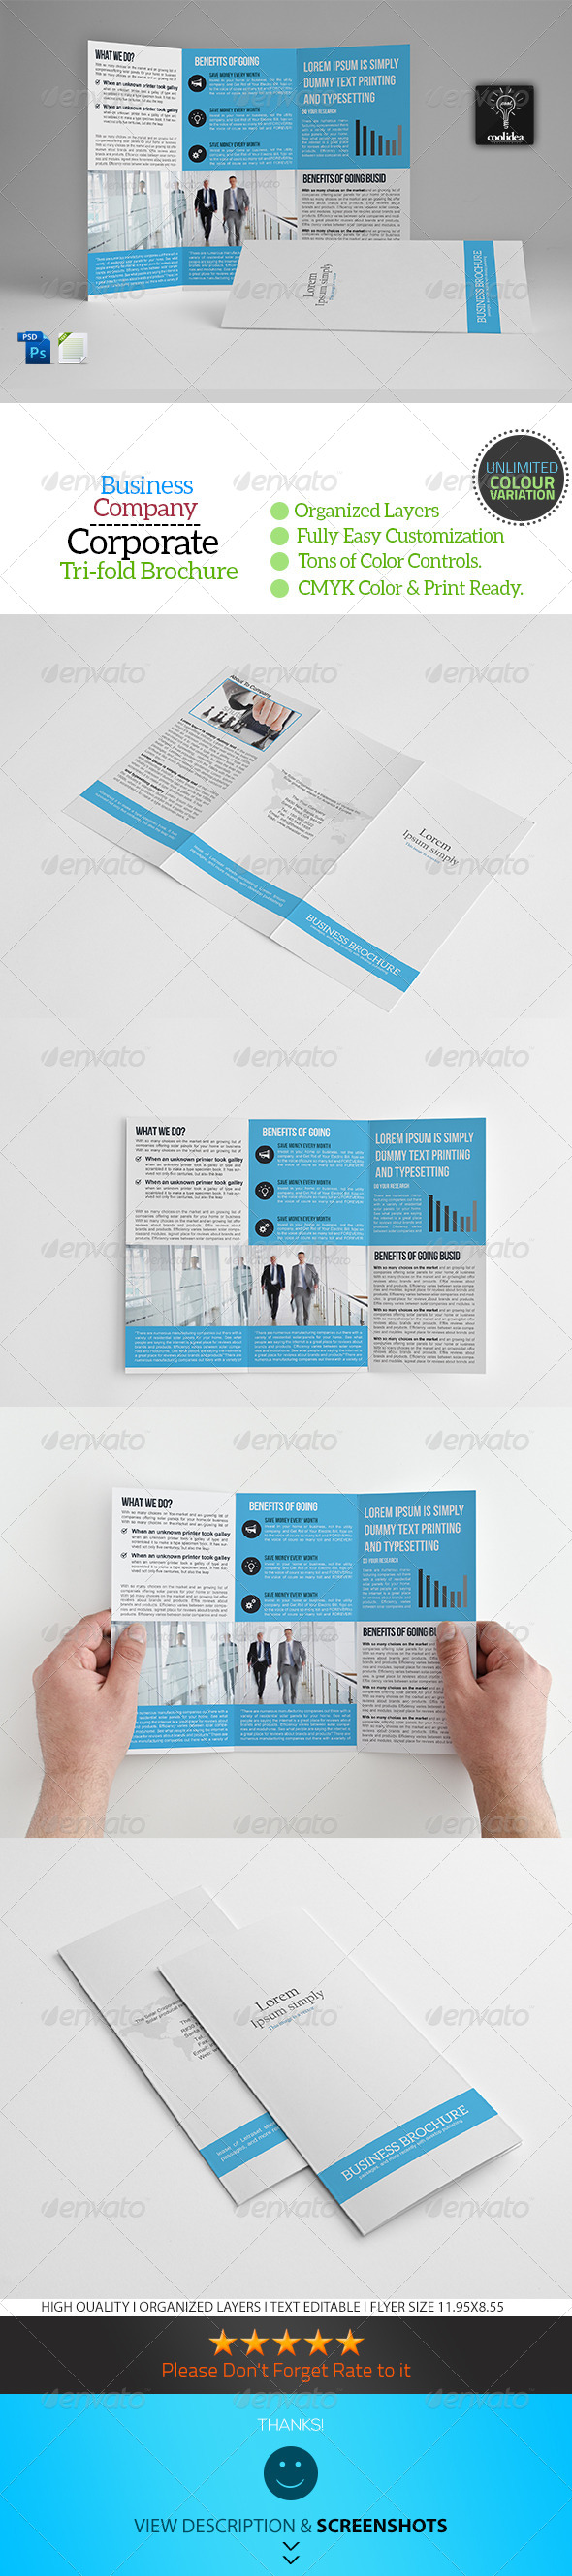 A4 Trifold Business Brochure Template Vol05 - Corporate Brochures